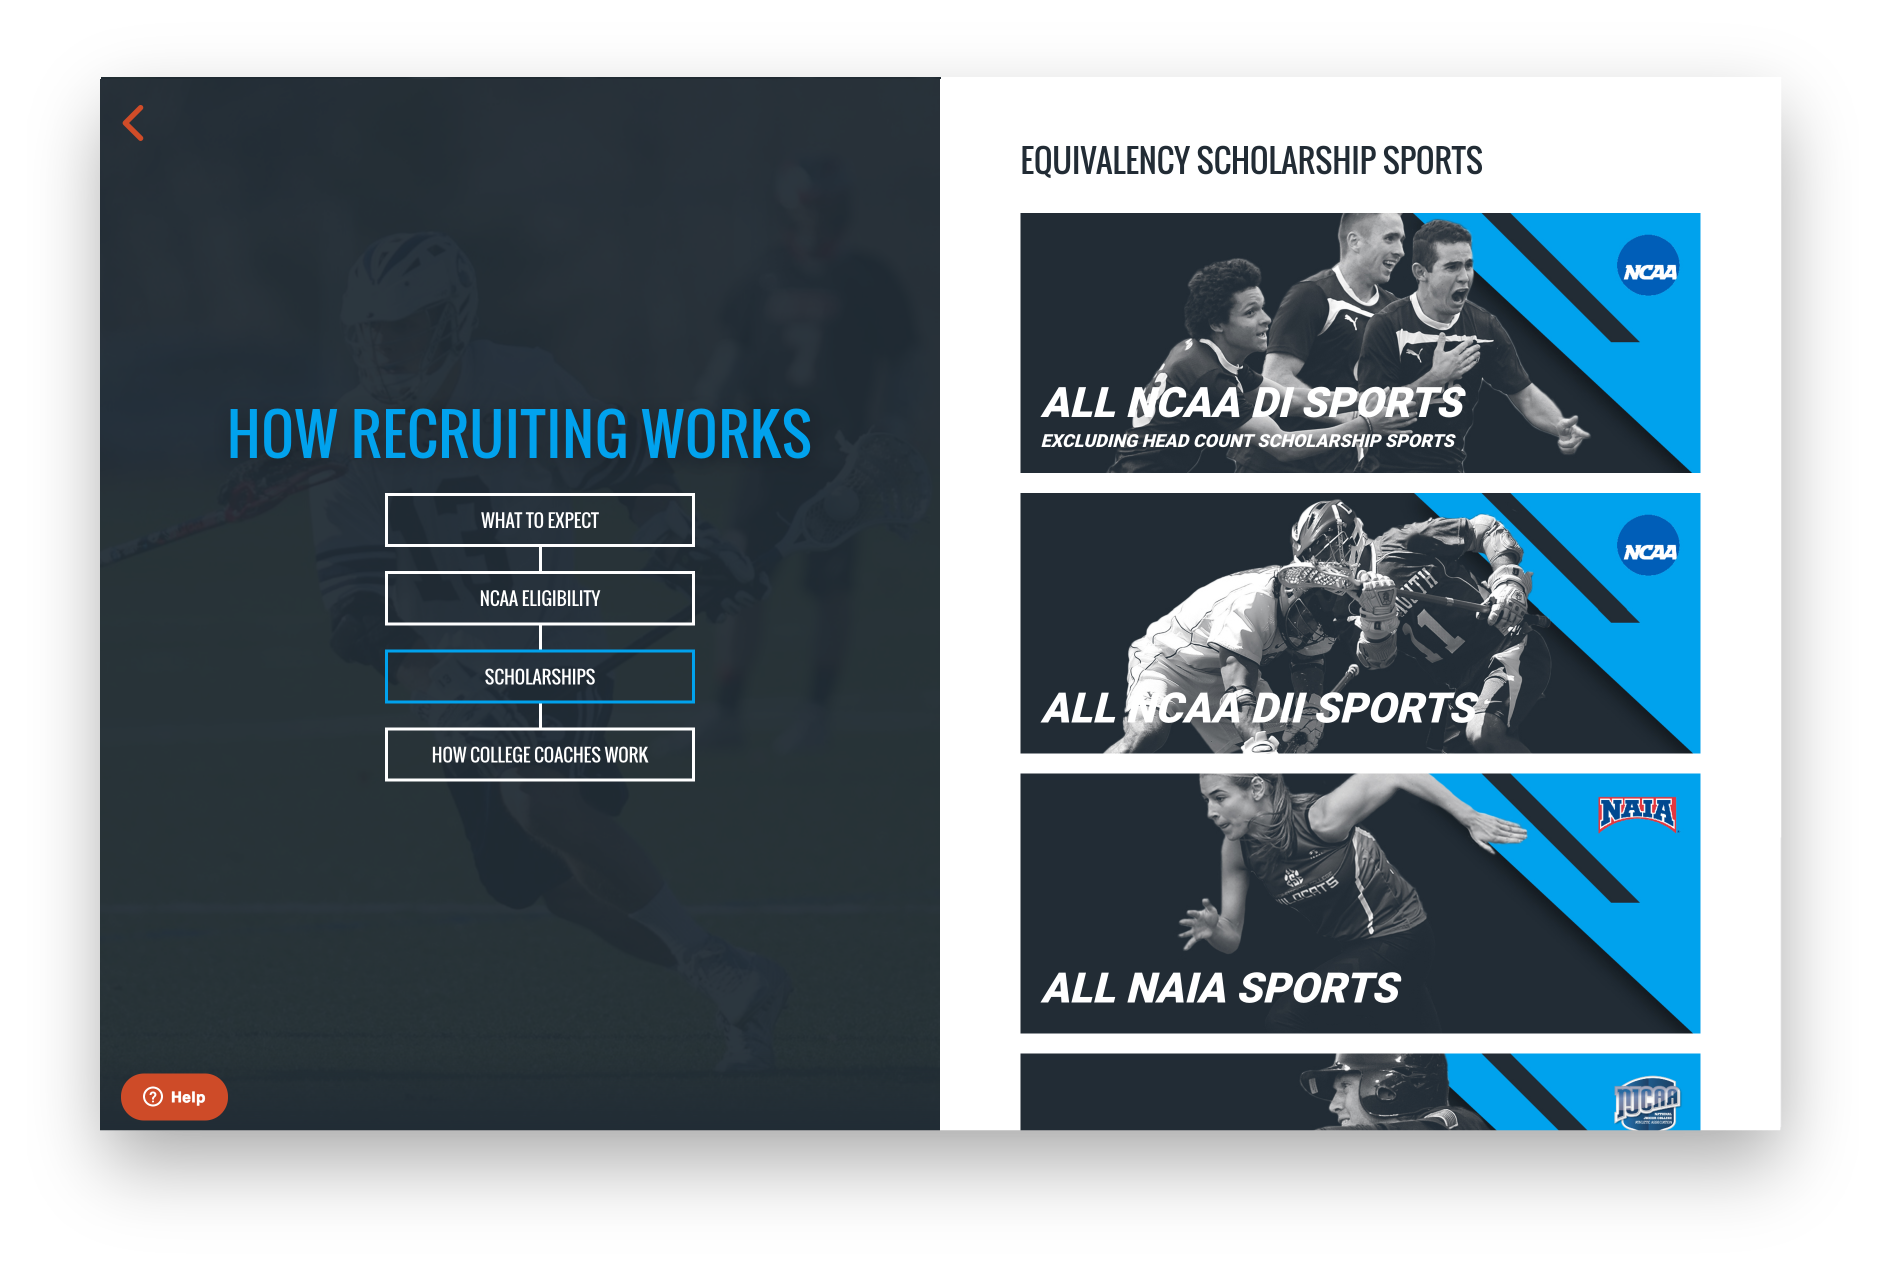 sportsrecruits-recruiting-guide